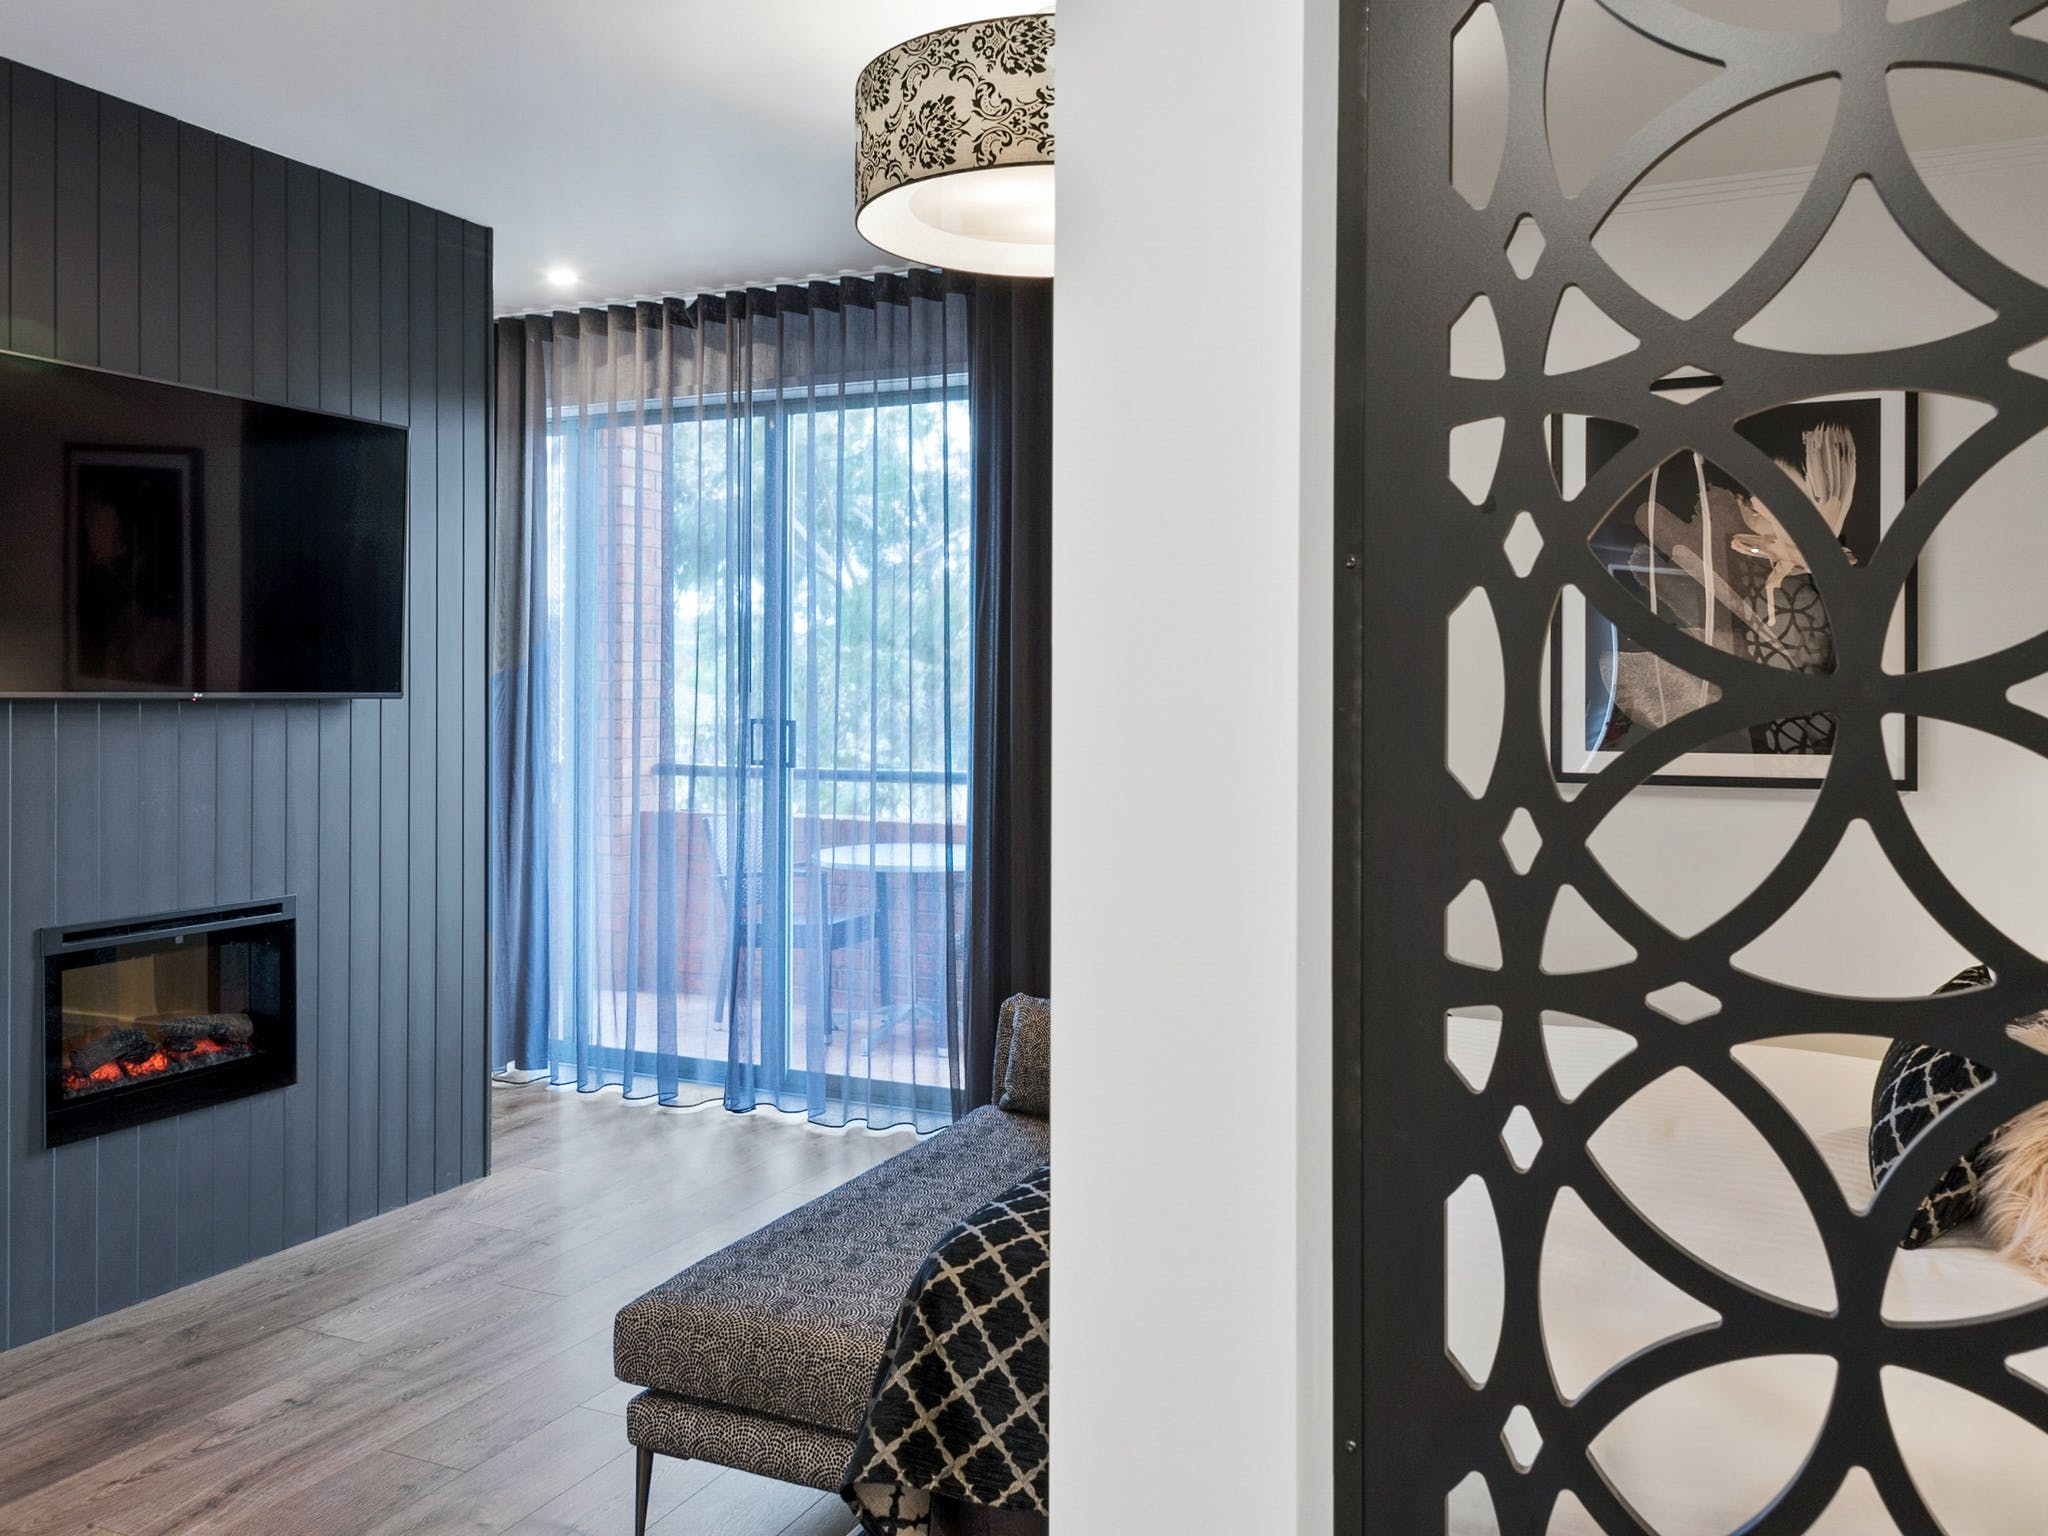 Looking through entry to bedroom with fireplace and television, looking out to balcony